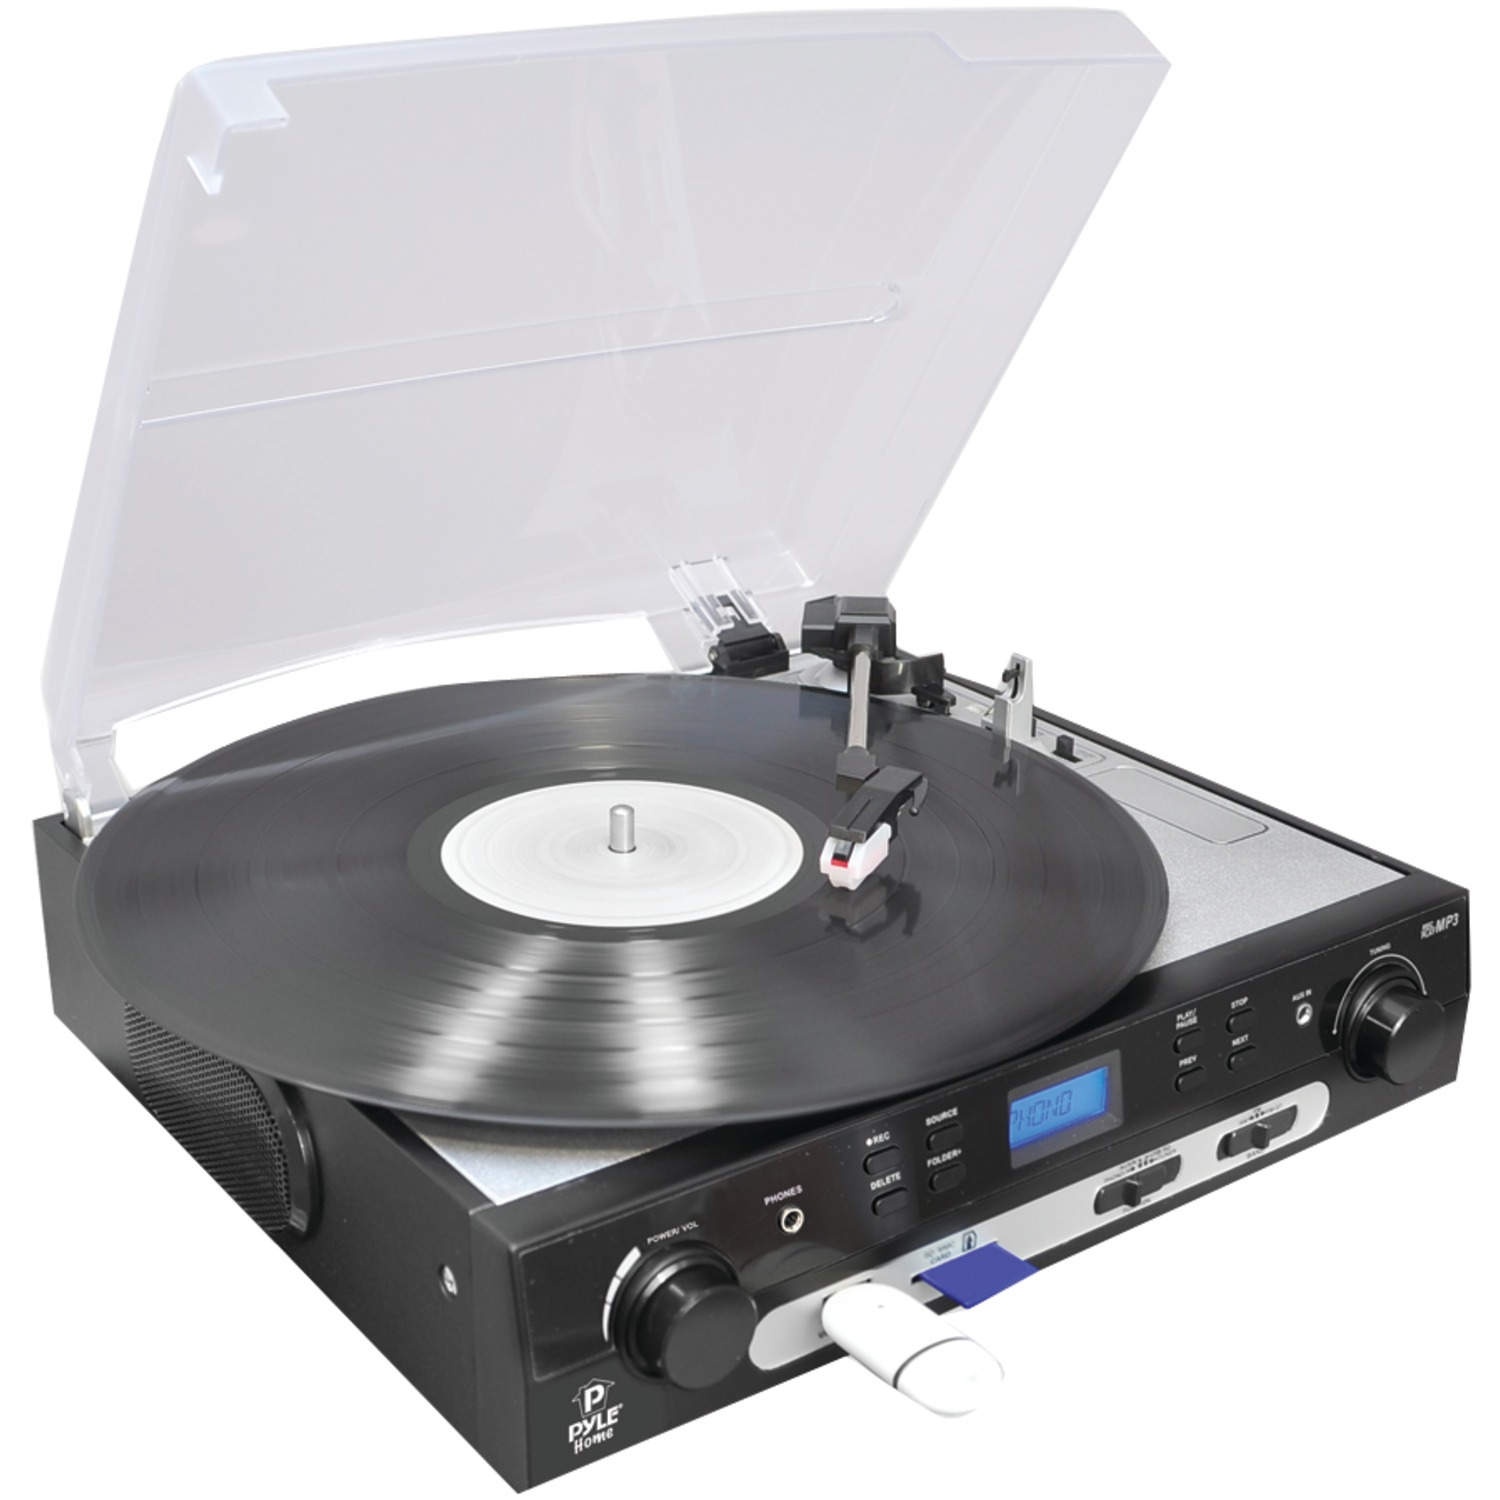 Pyle Home PLTTB9U Usb Turntable With Direct-to-digital Usb sd Card Encoder by Pyle